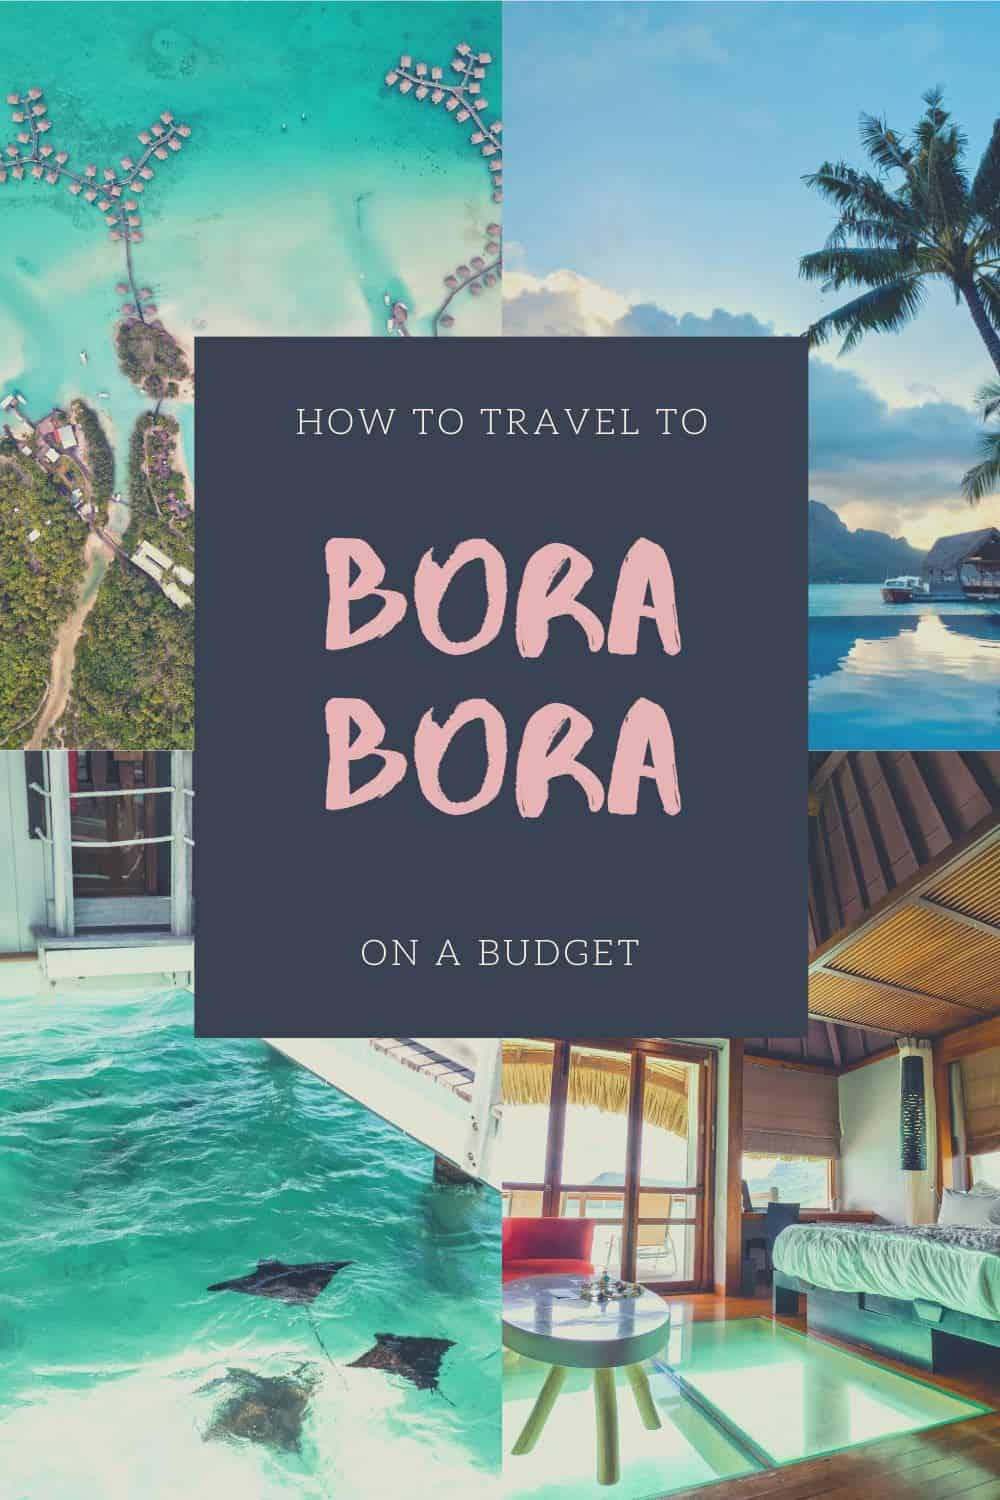 How to Travel Bora Bora on a Budget - Tips to keep Bora Bora trip costs low